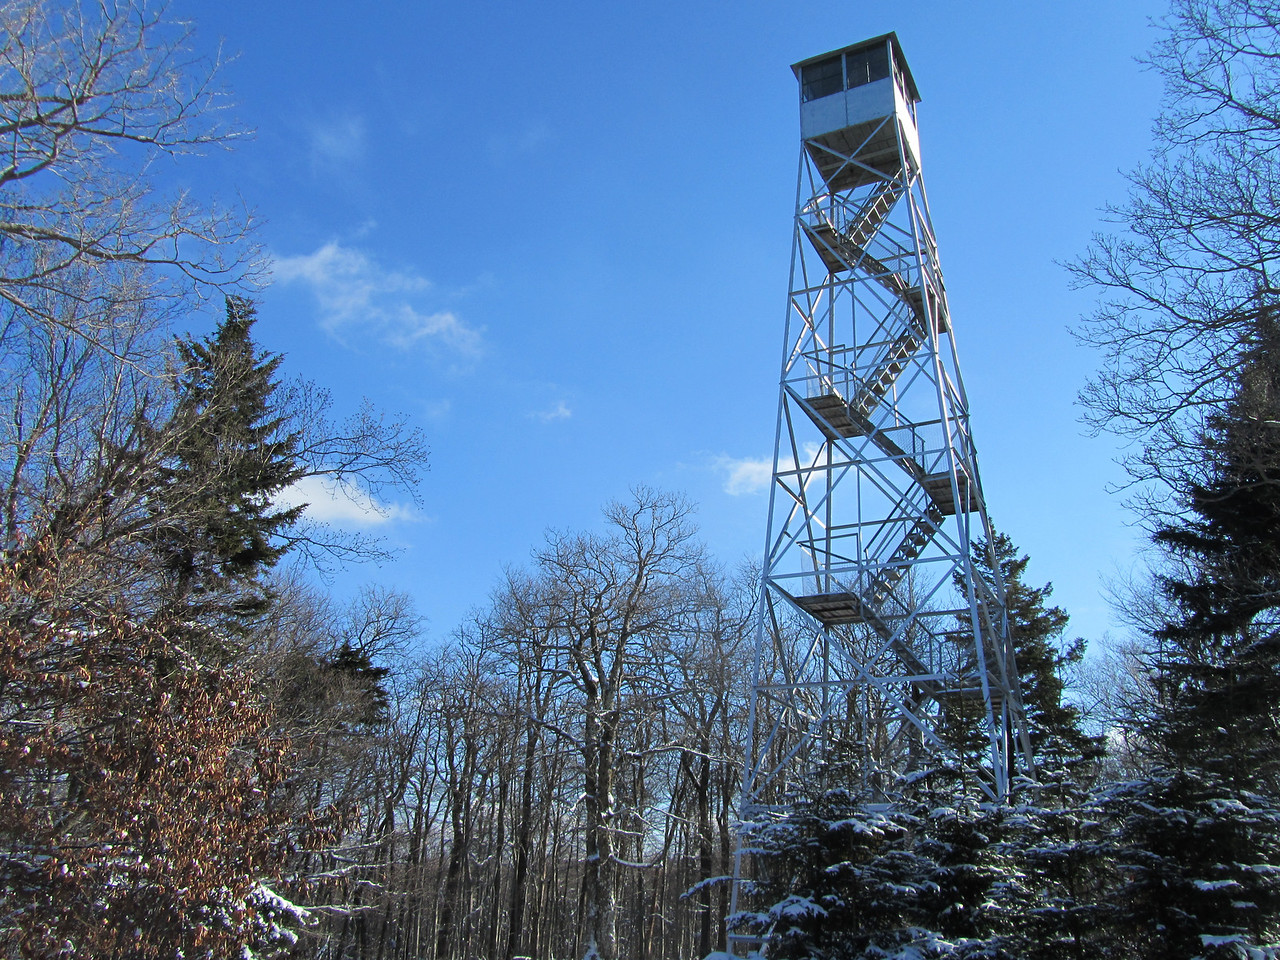 The tower was in great shape: refurbished by volunteers. The stairs were open but the cab of the tower and the ranger cabin locked up. This cabin is manned during the summer with a historian to answer questions. This would make a nice summer hike with picnic and view from the cab of the reservoirs.